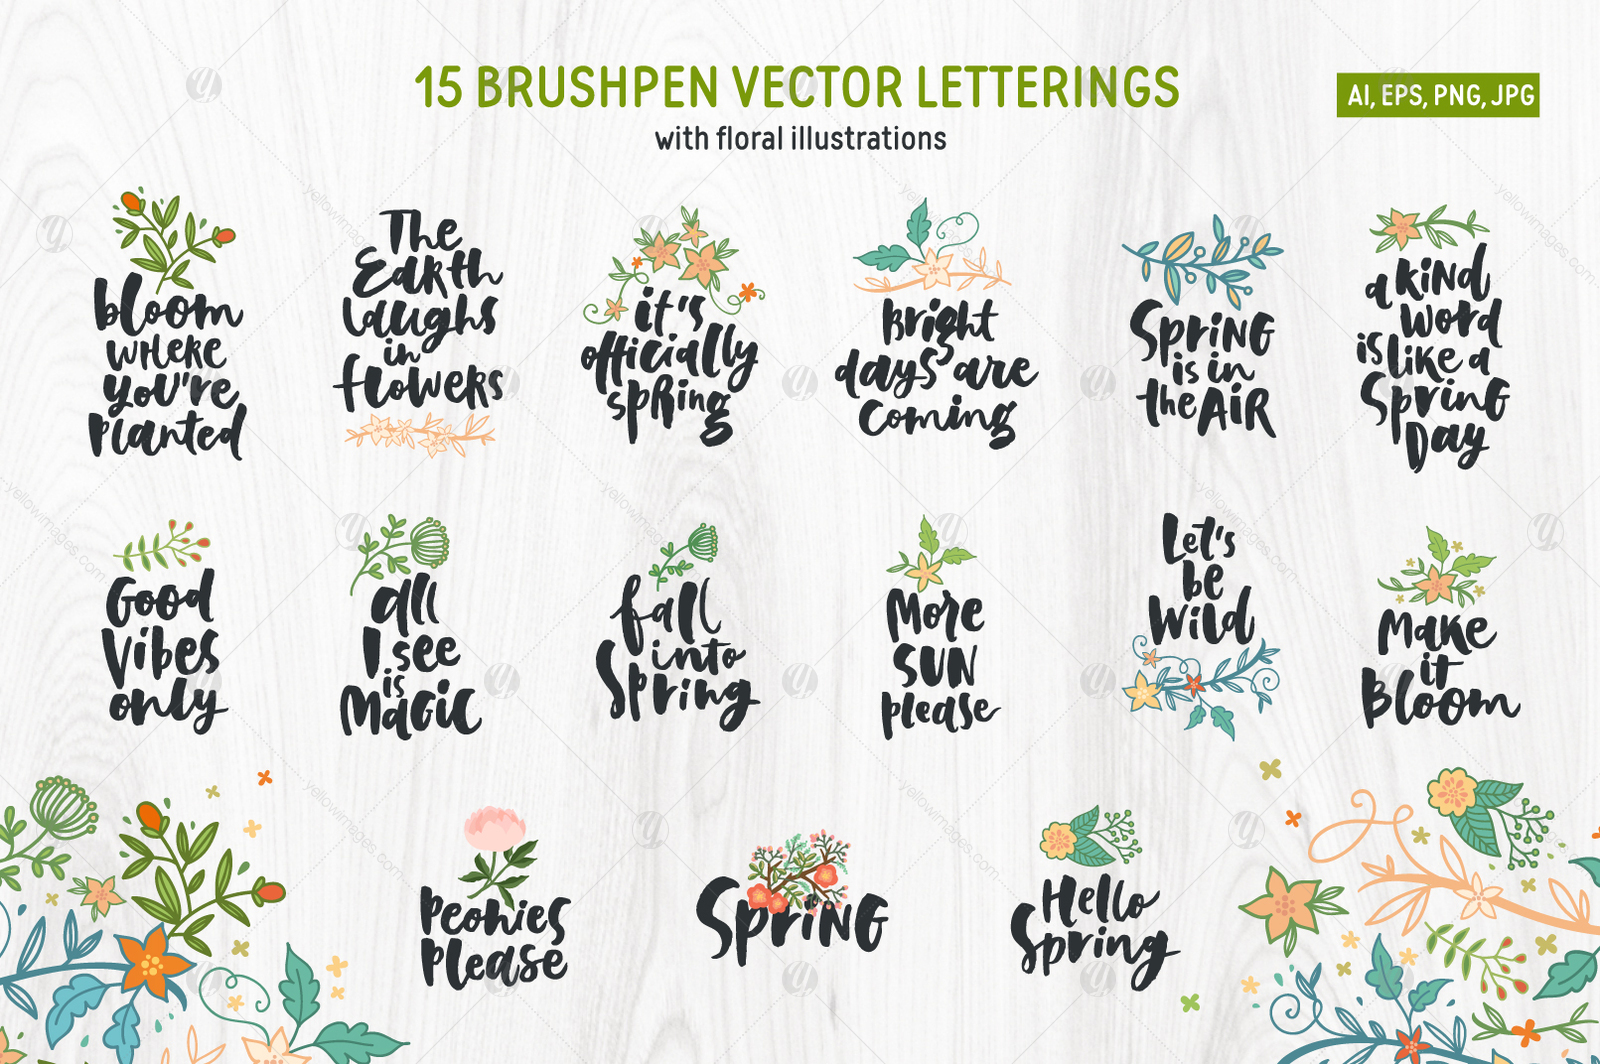 Spring! Letterings+graphics+patterns